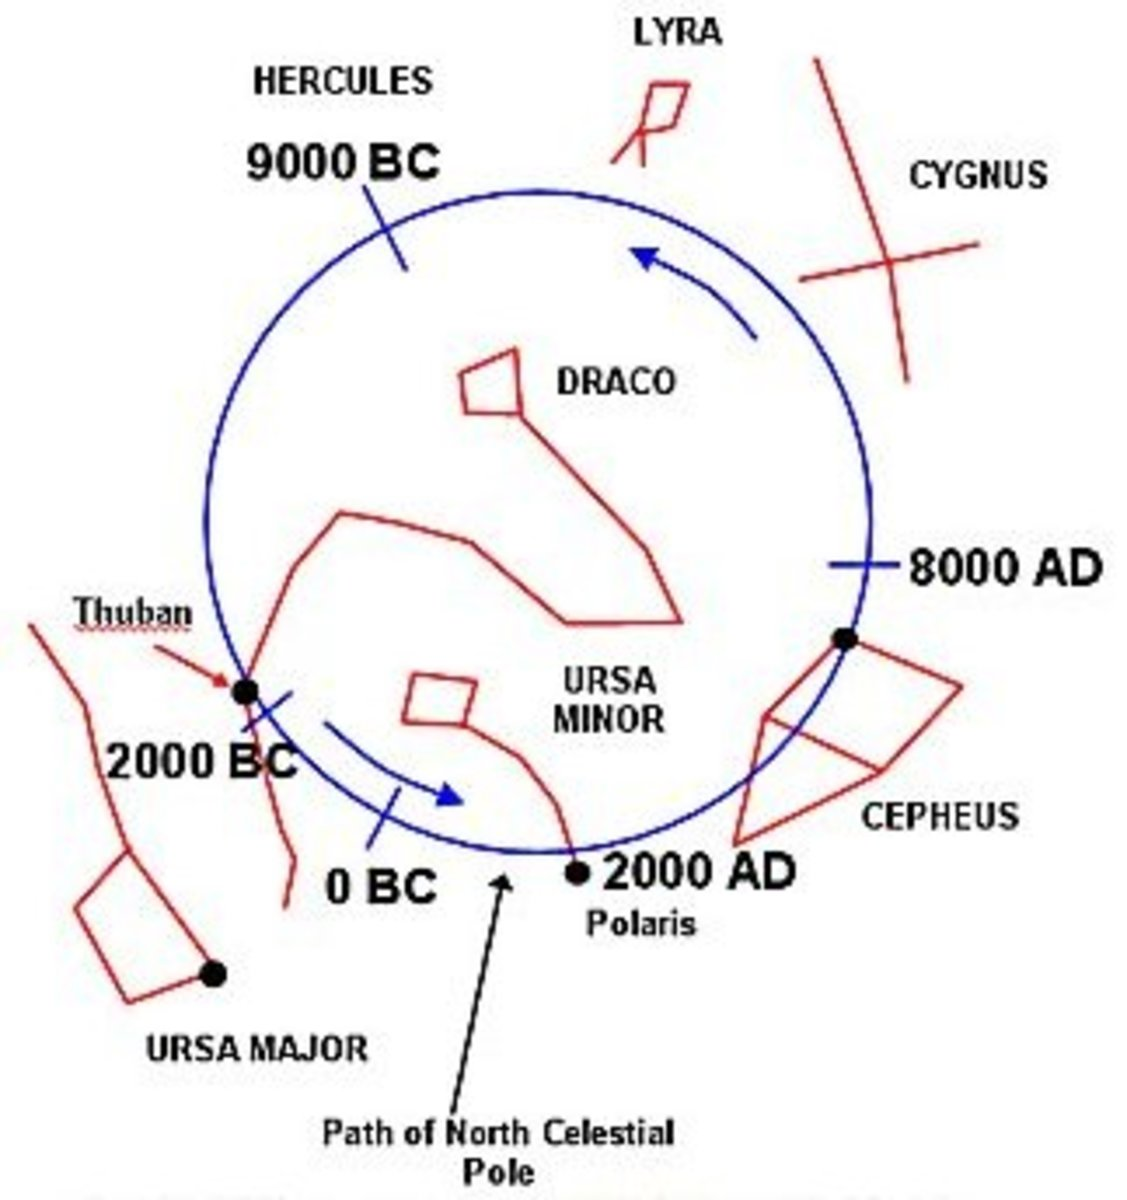 The precession of the equinox as it is called, is due to the earth's axis wobble that takes some 25,827 years to cycle. This changes the pole star over the eons. The map shows various pole stars in ages past and for the future. Each one of these are